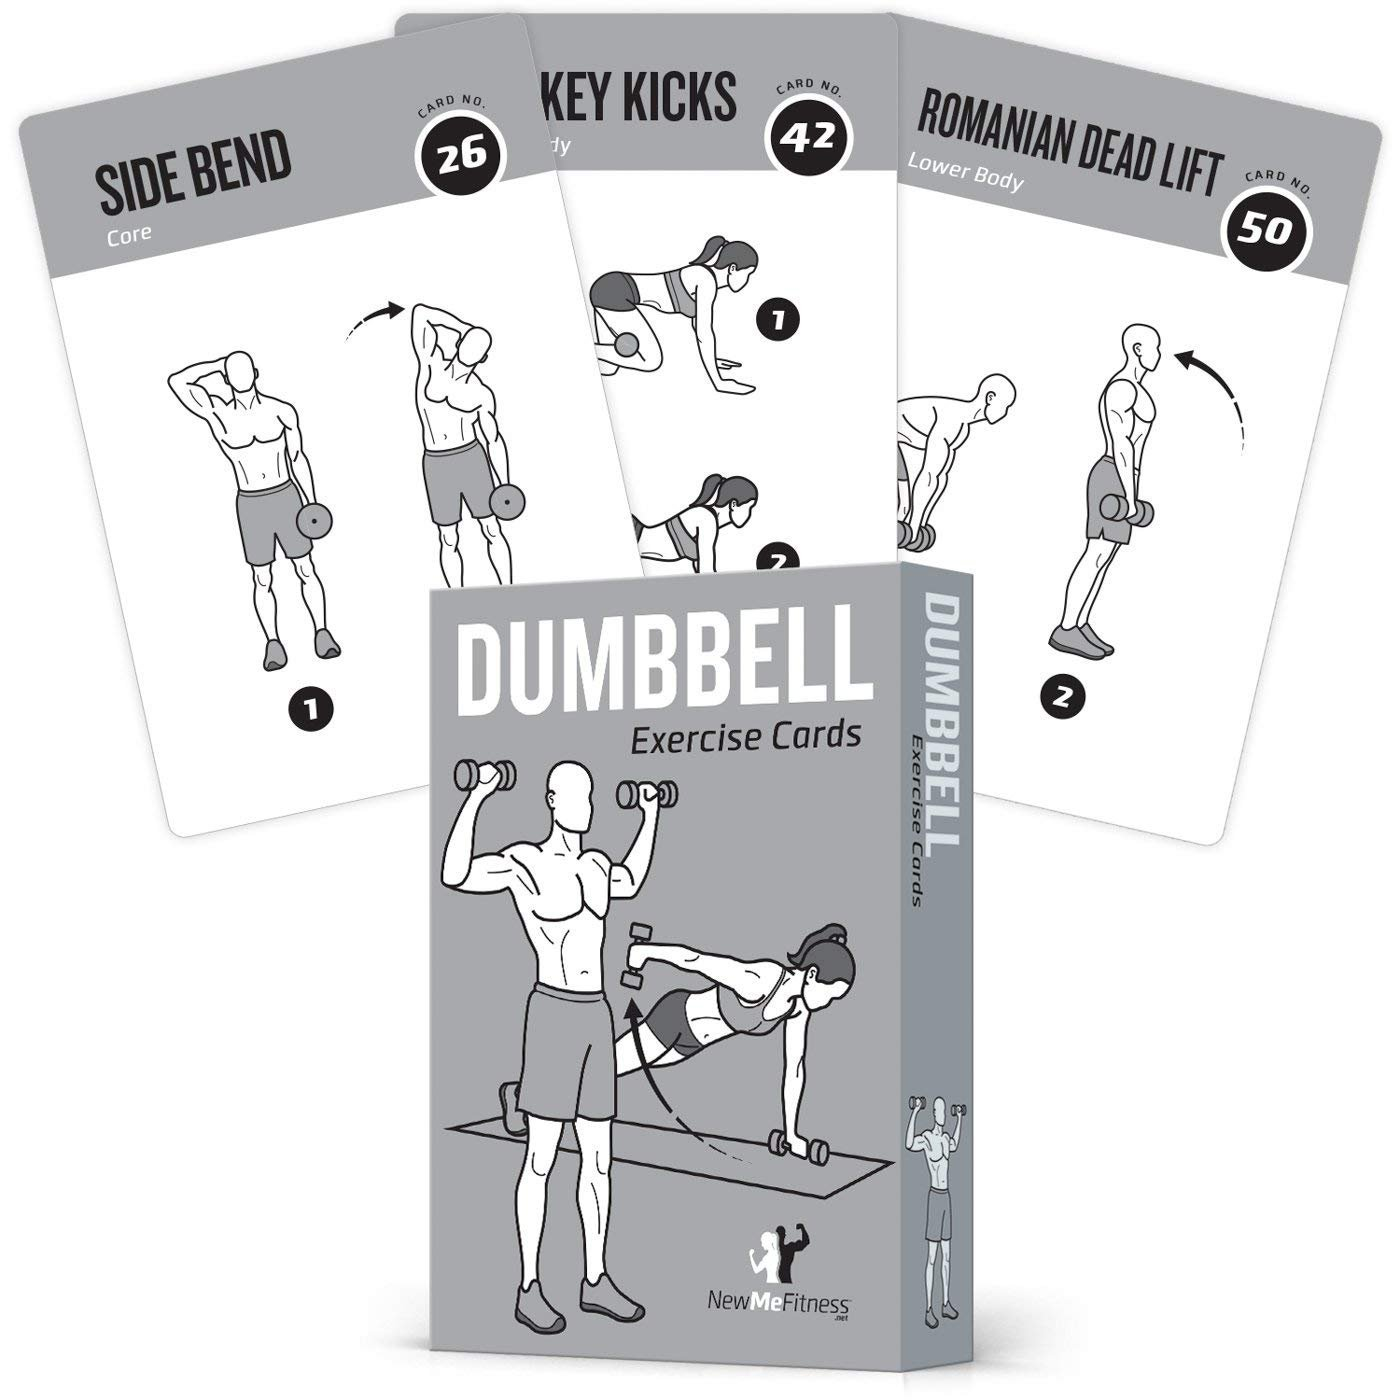 Dumbbells clipart exercise plan. Cards dumbbell home gym